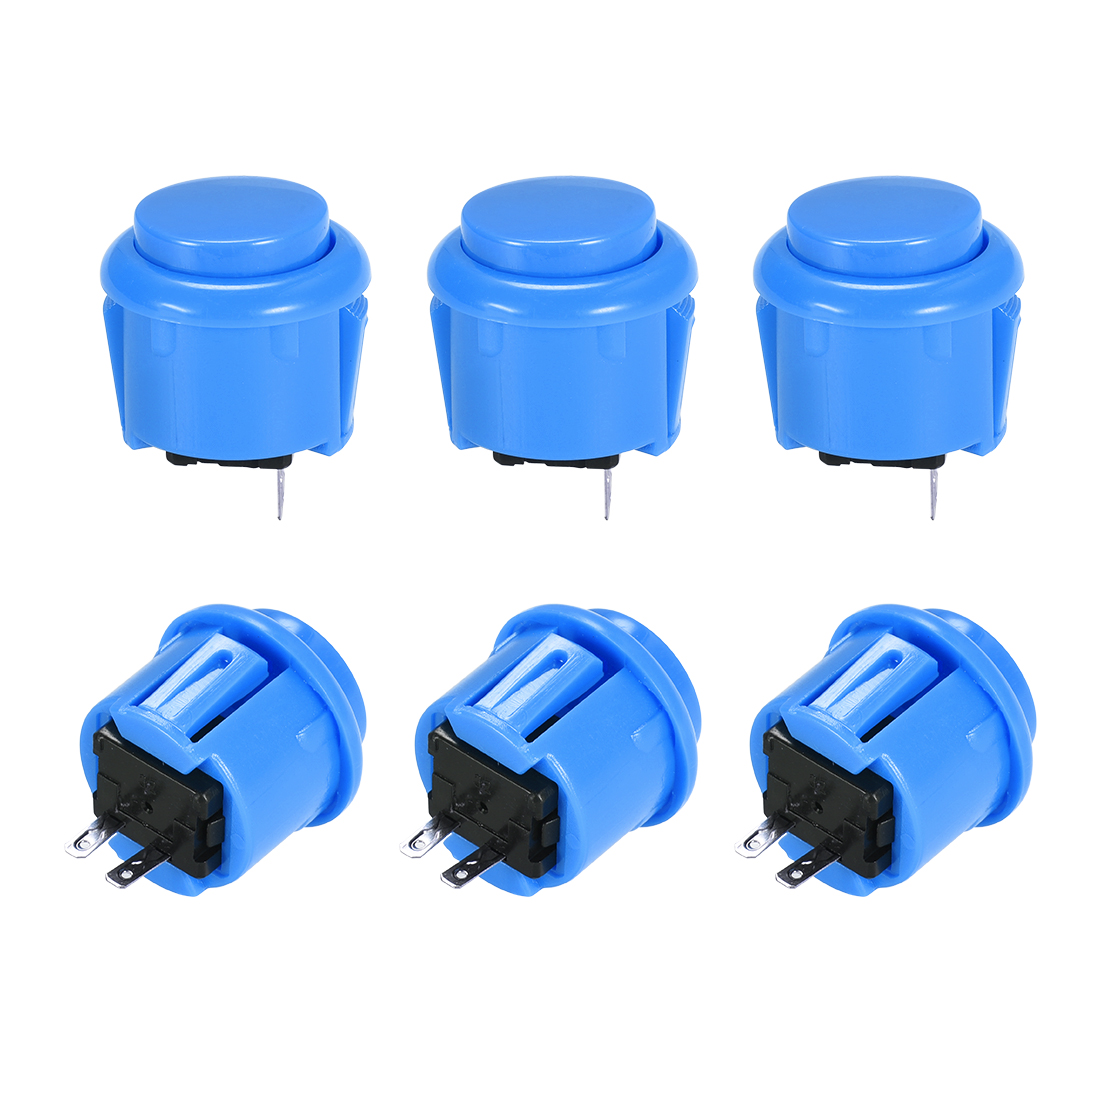 23mm Momentary Game Push Button Switch for Arcade Video Games Blue 6pcs